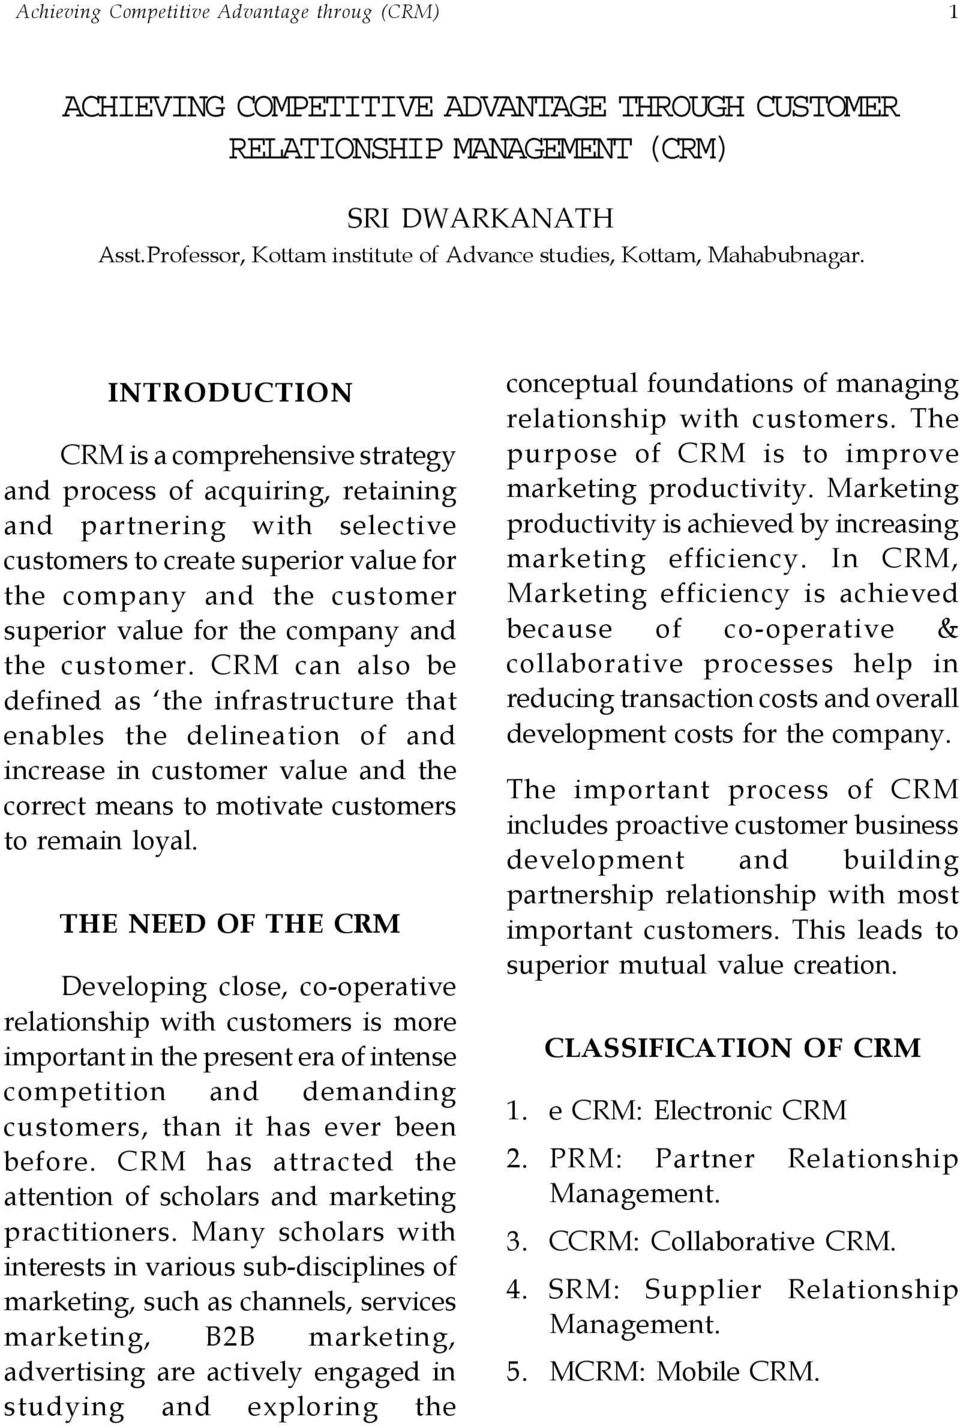 the company and the customer. CRM can also be defined as the infrastructure that enables the delineation of and increase in customer value and the correct means to motivate customers to remain loyal.